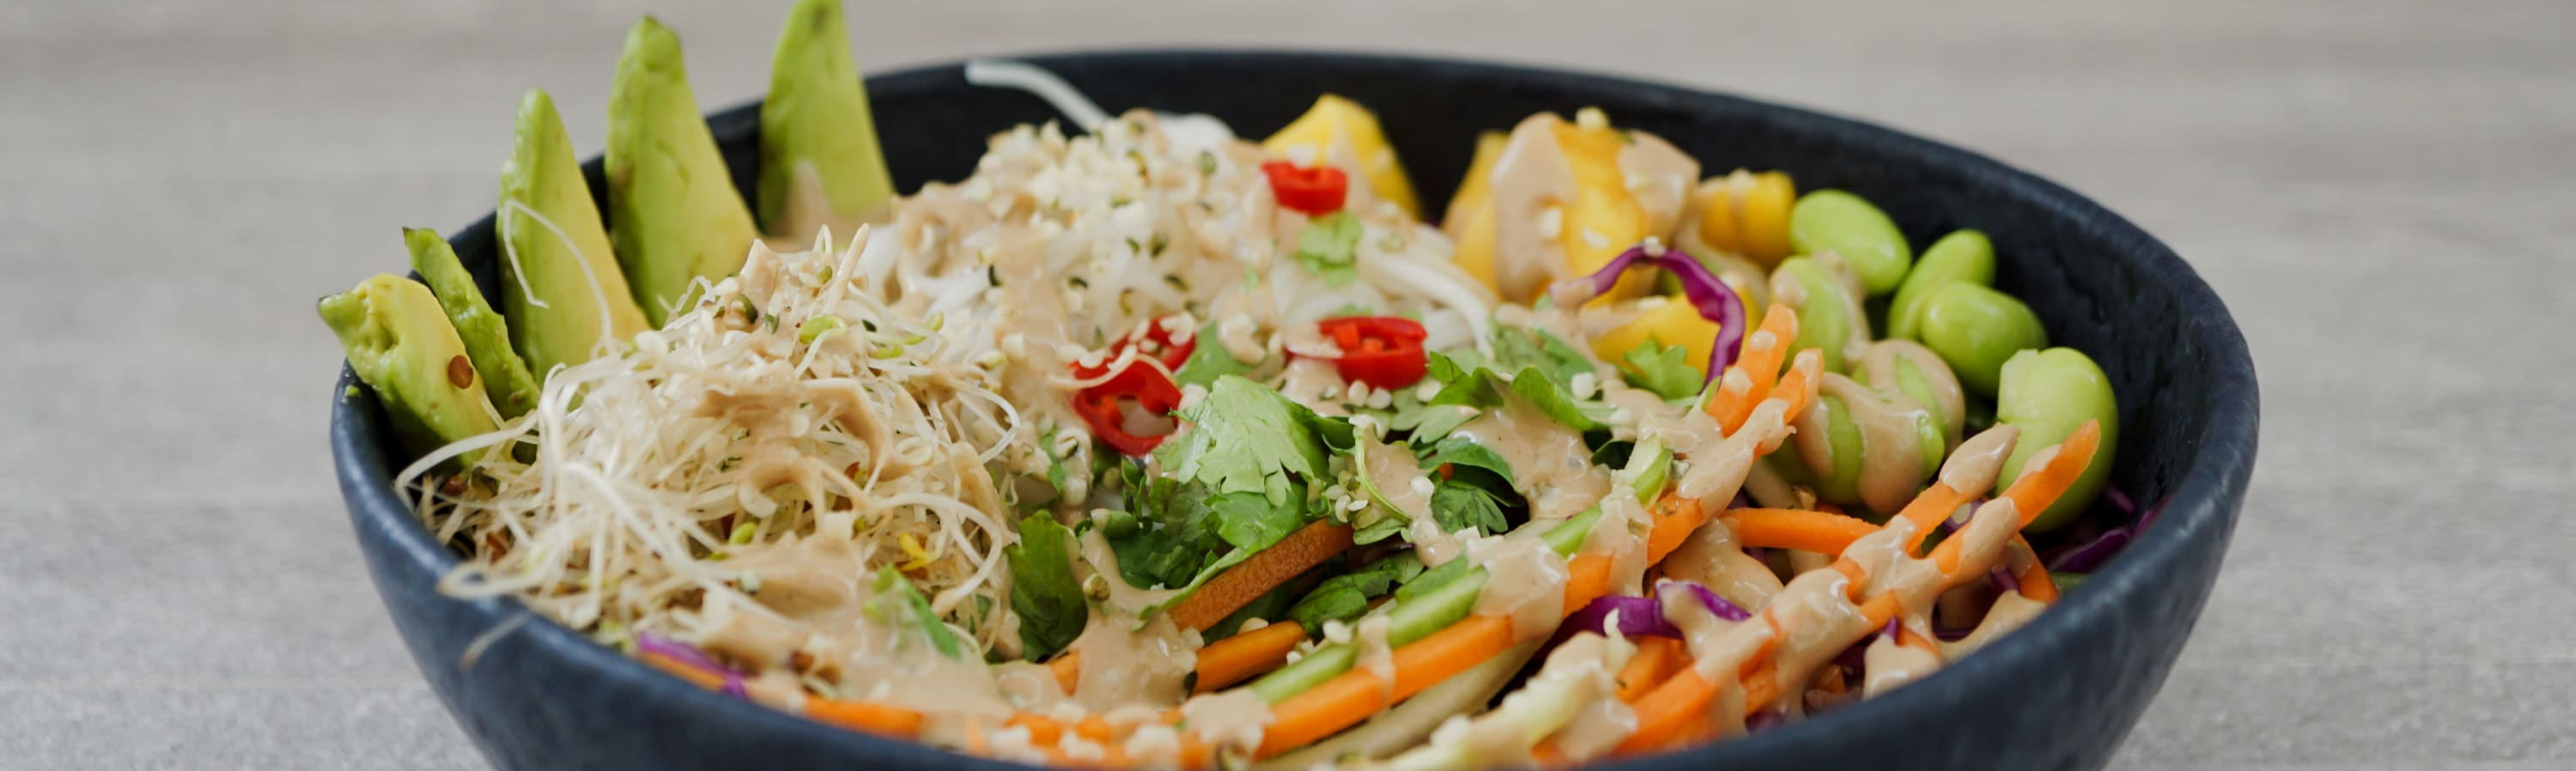 spring roll salad with tahini dressing on top